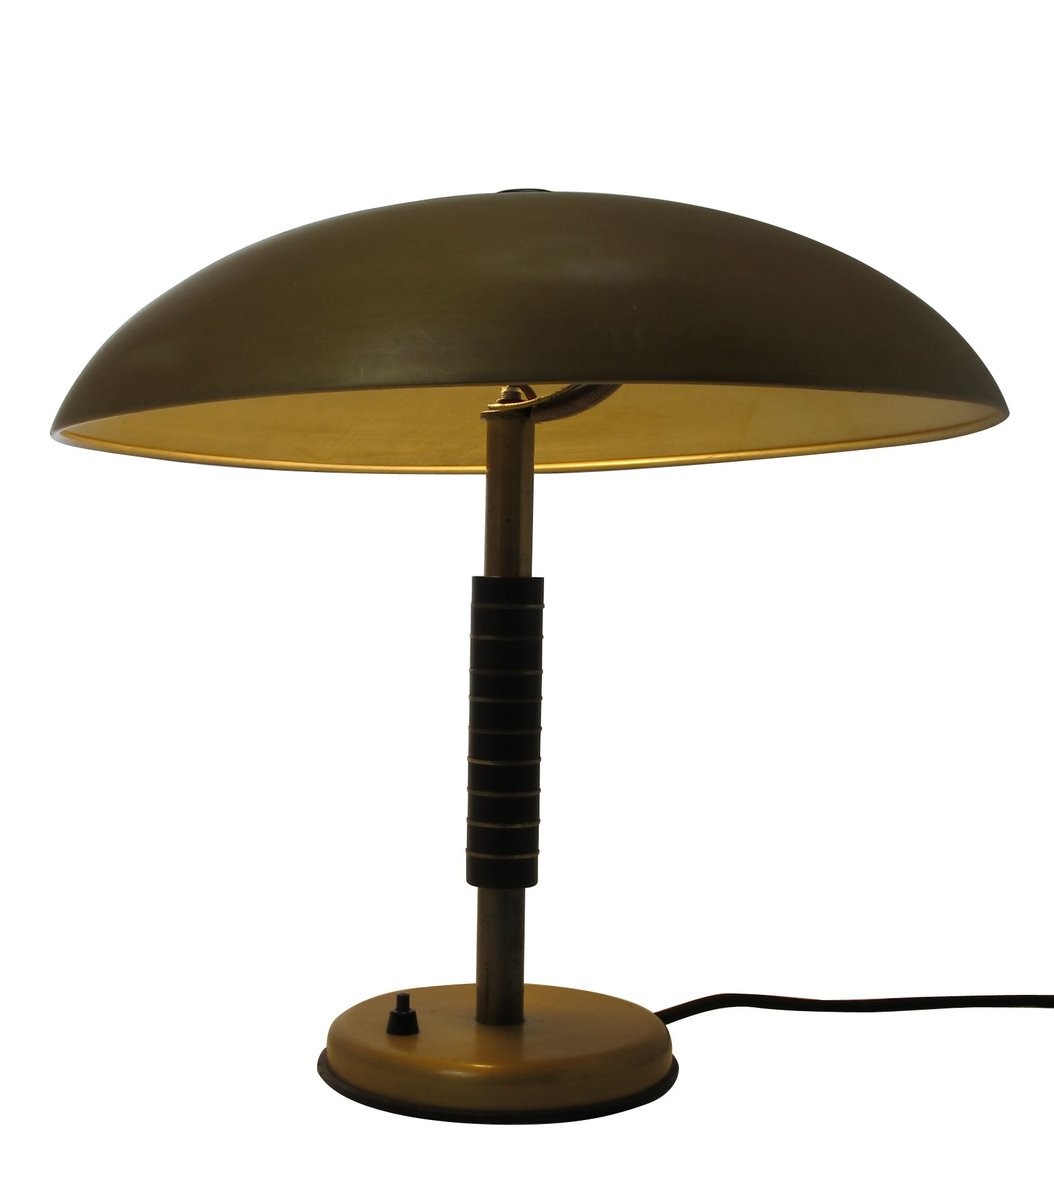 German Art Deco Table Lamp By SbF, 1944 For Sale At Pamono